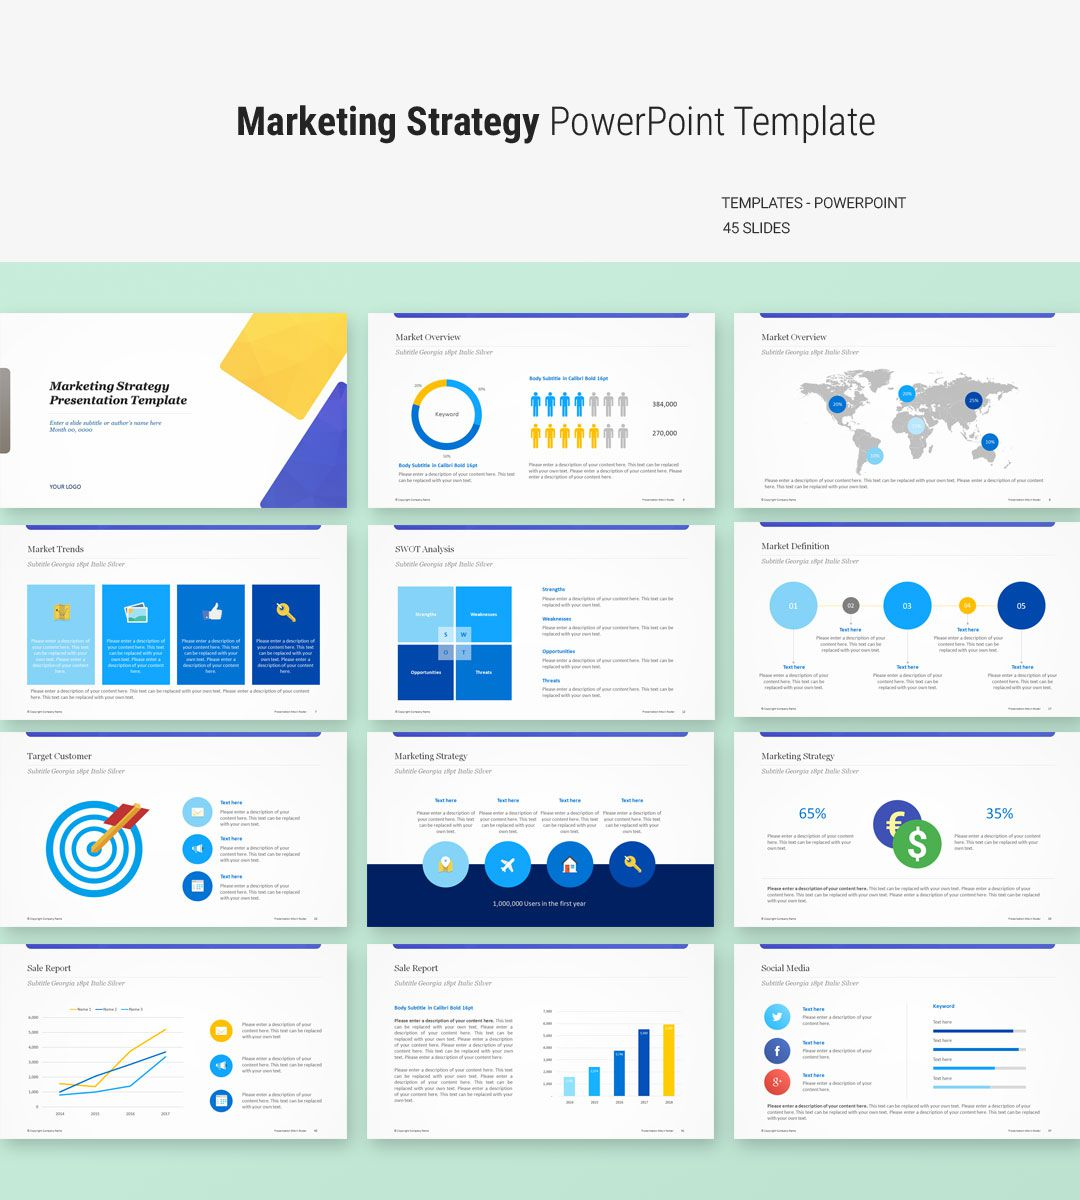 006 Outstanding Marketing Campaign Plan Template Free High Def Full